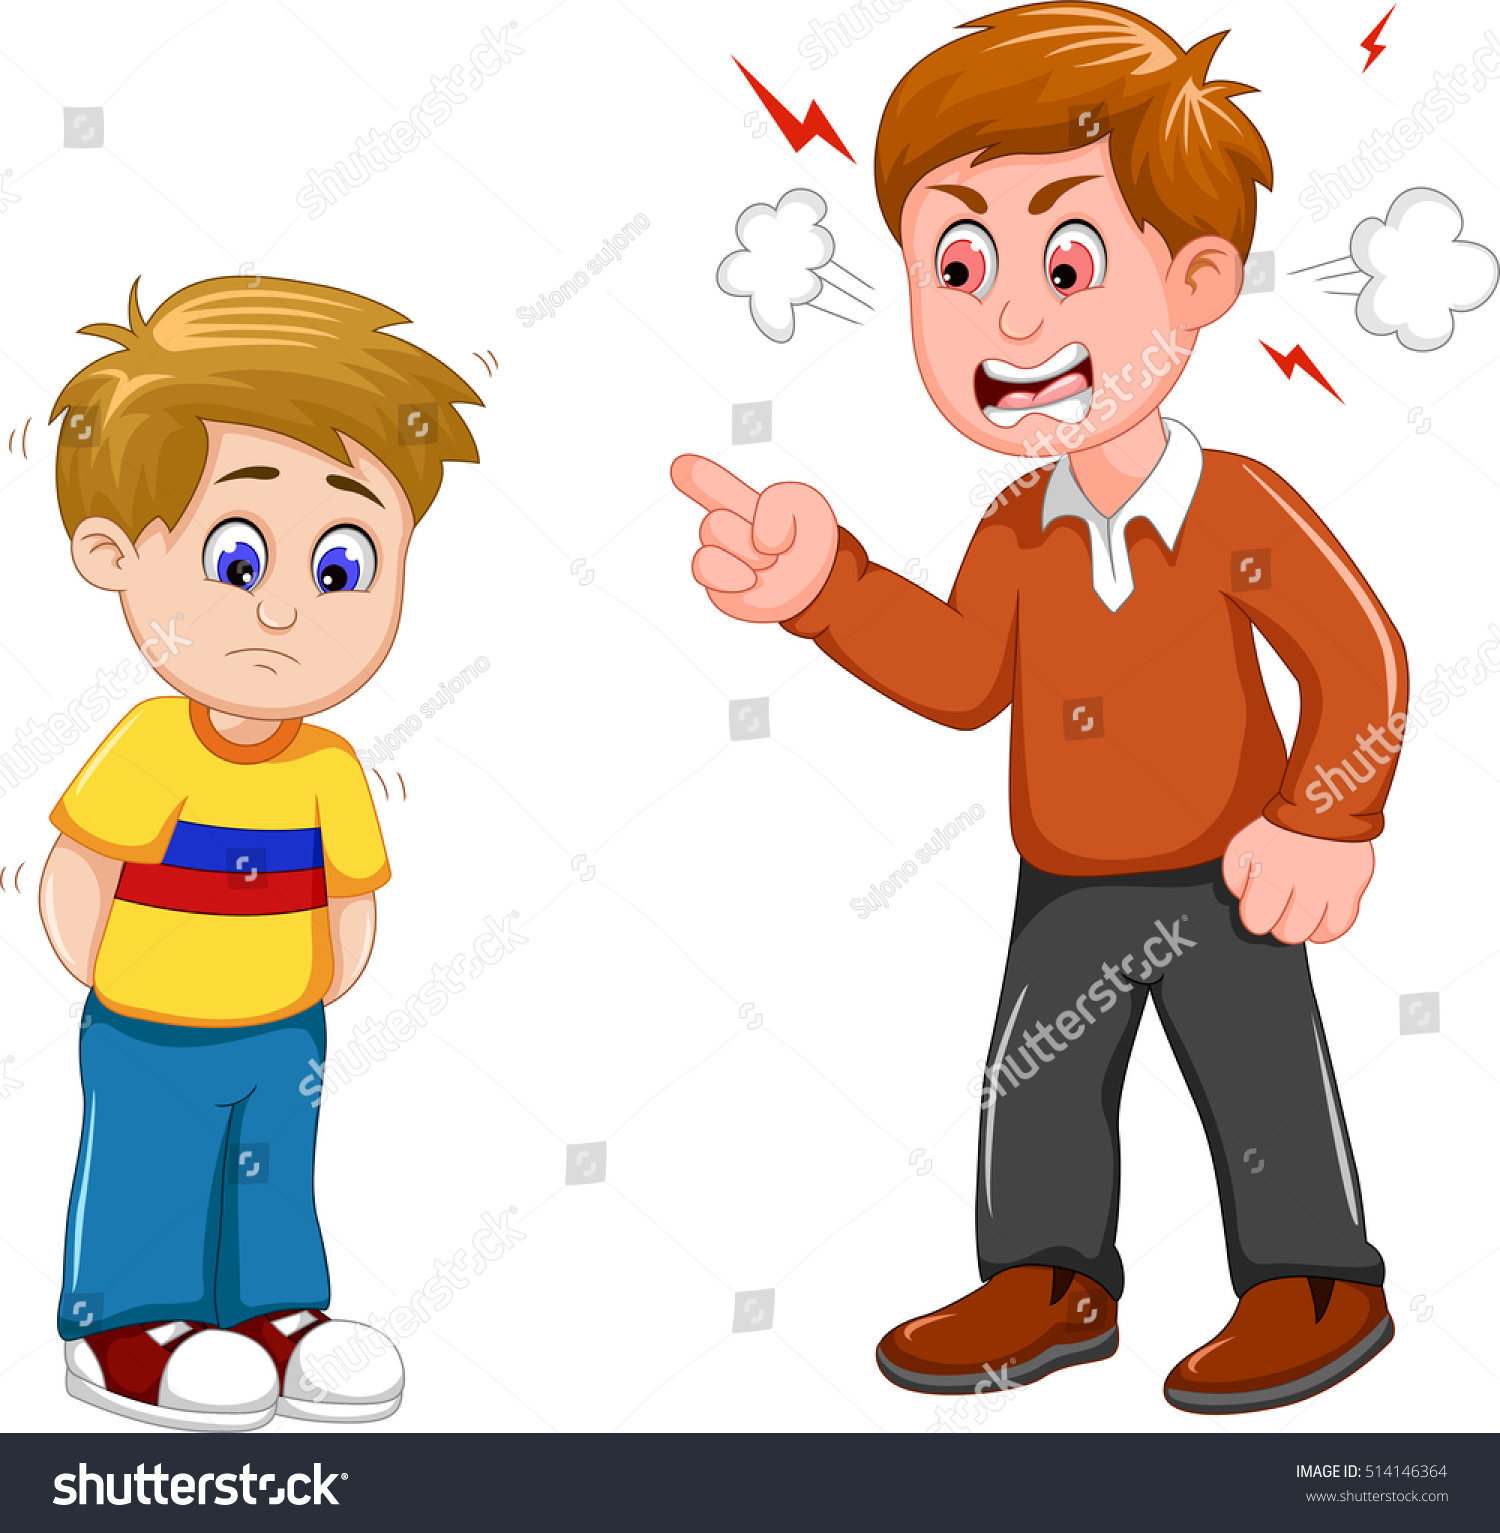 cartoon father scolding his son ベクター画像素材 514146364